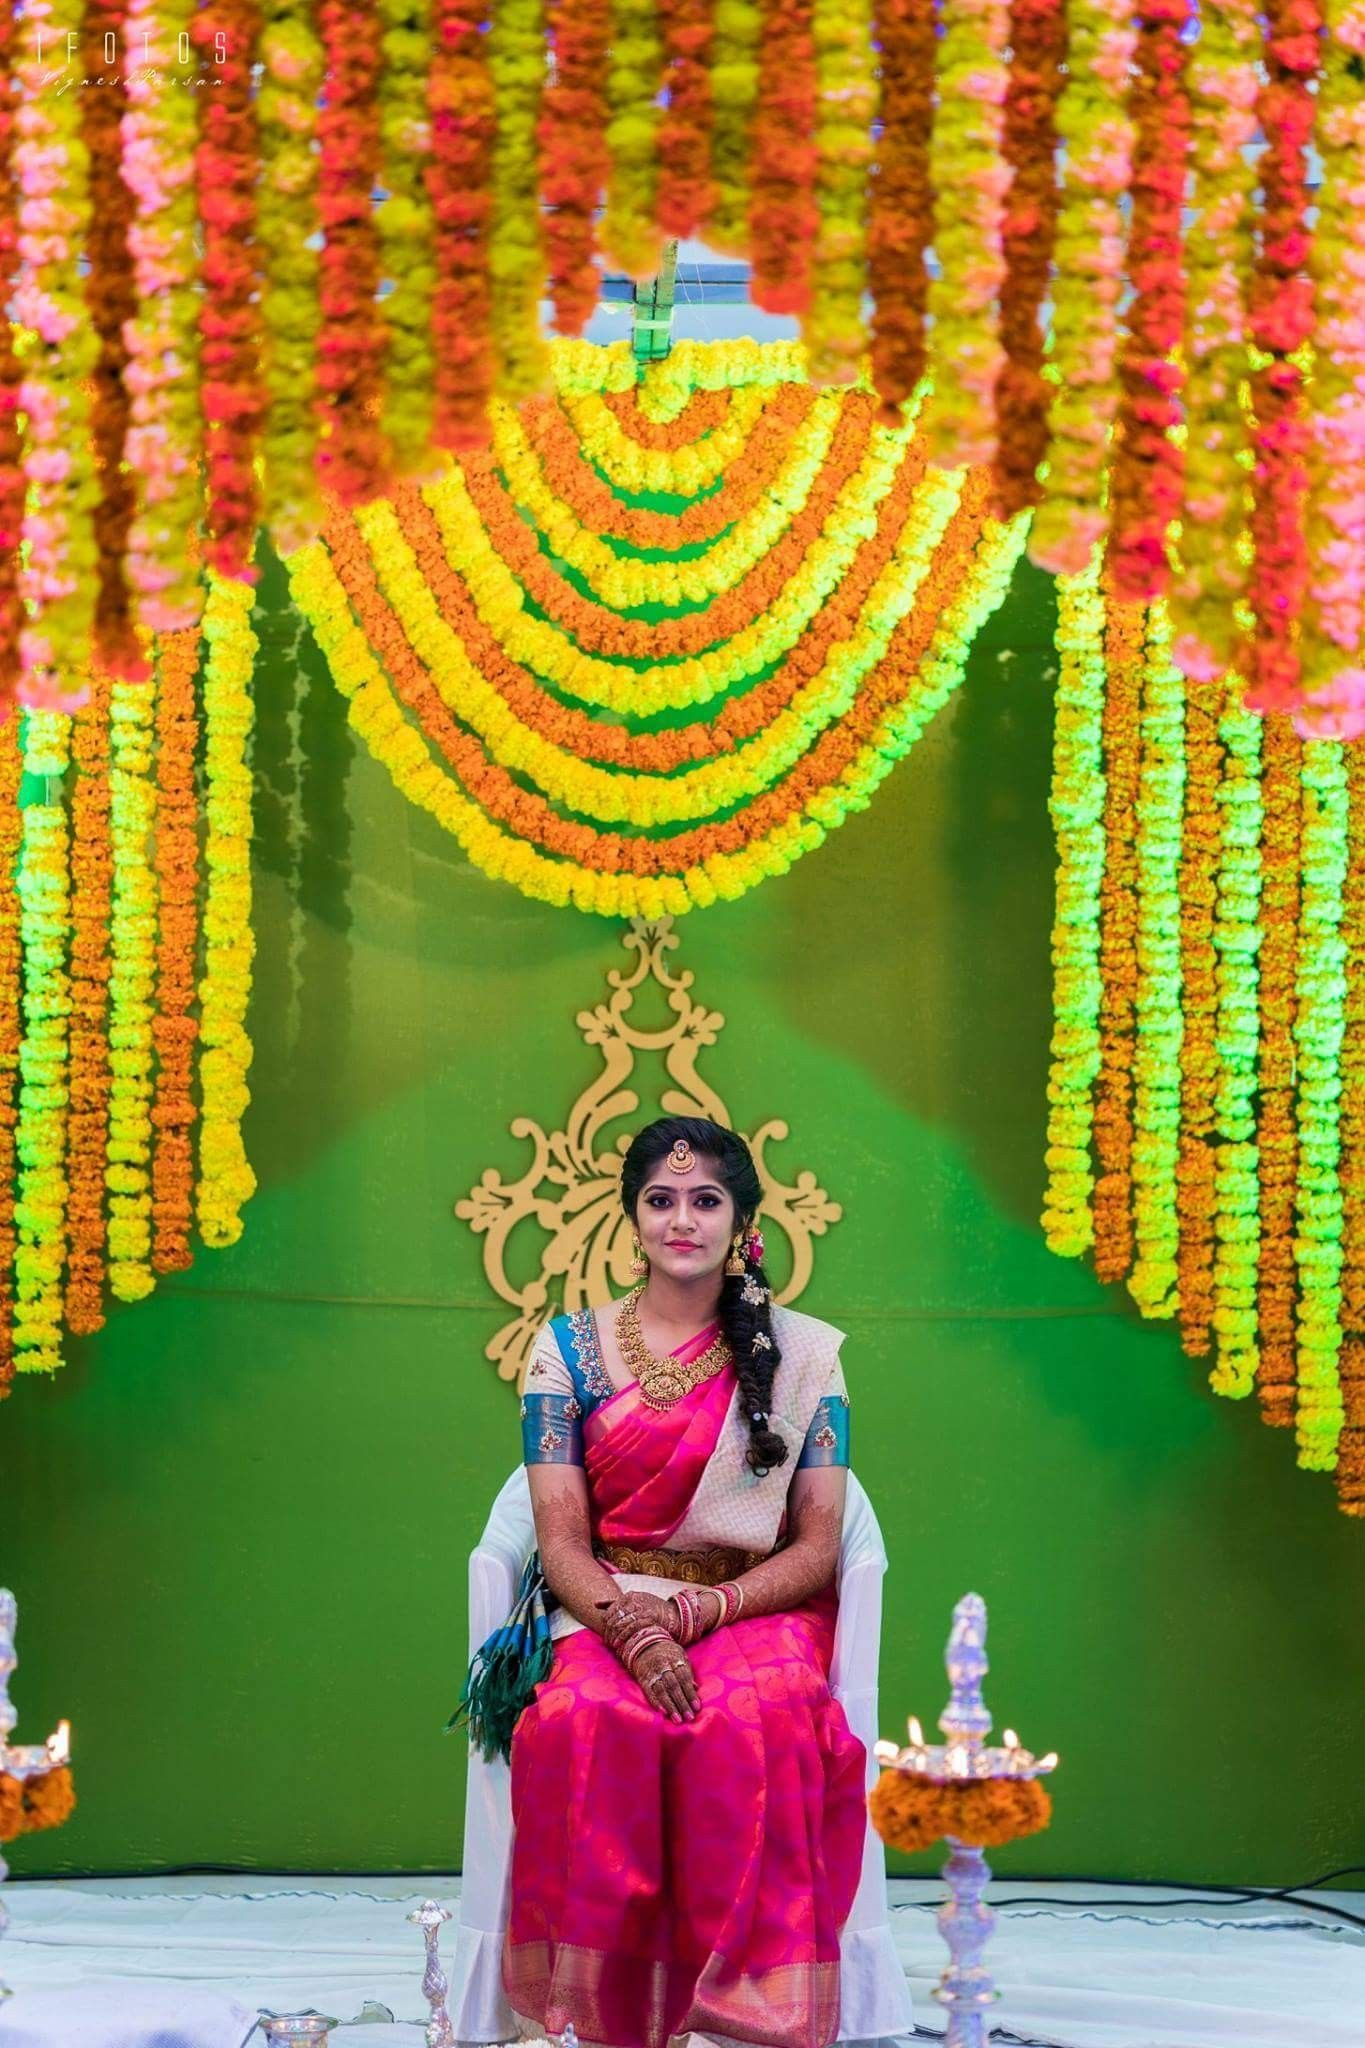 Baby Shower Stage Decoration Ideas In India : shower, stage, decoration, ideas, india, Laxmi, Brides, Wedding, Decor,, Indian, Shower, Decorations,, Showers